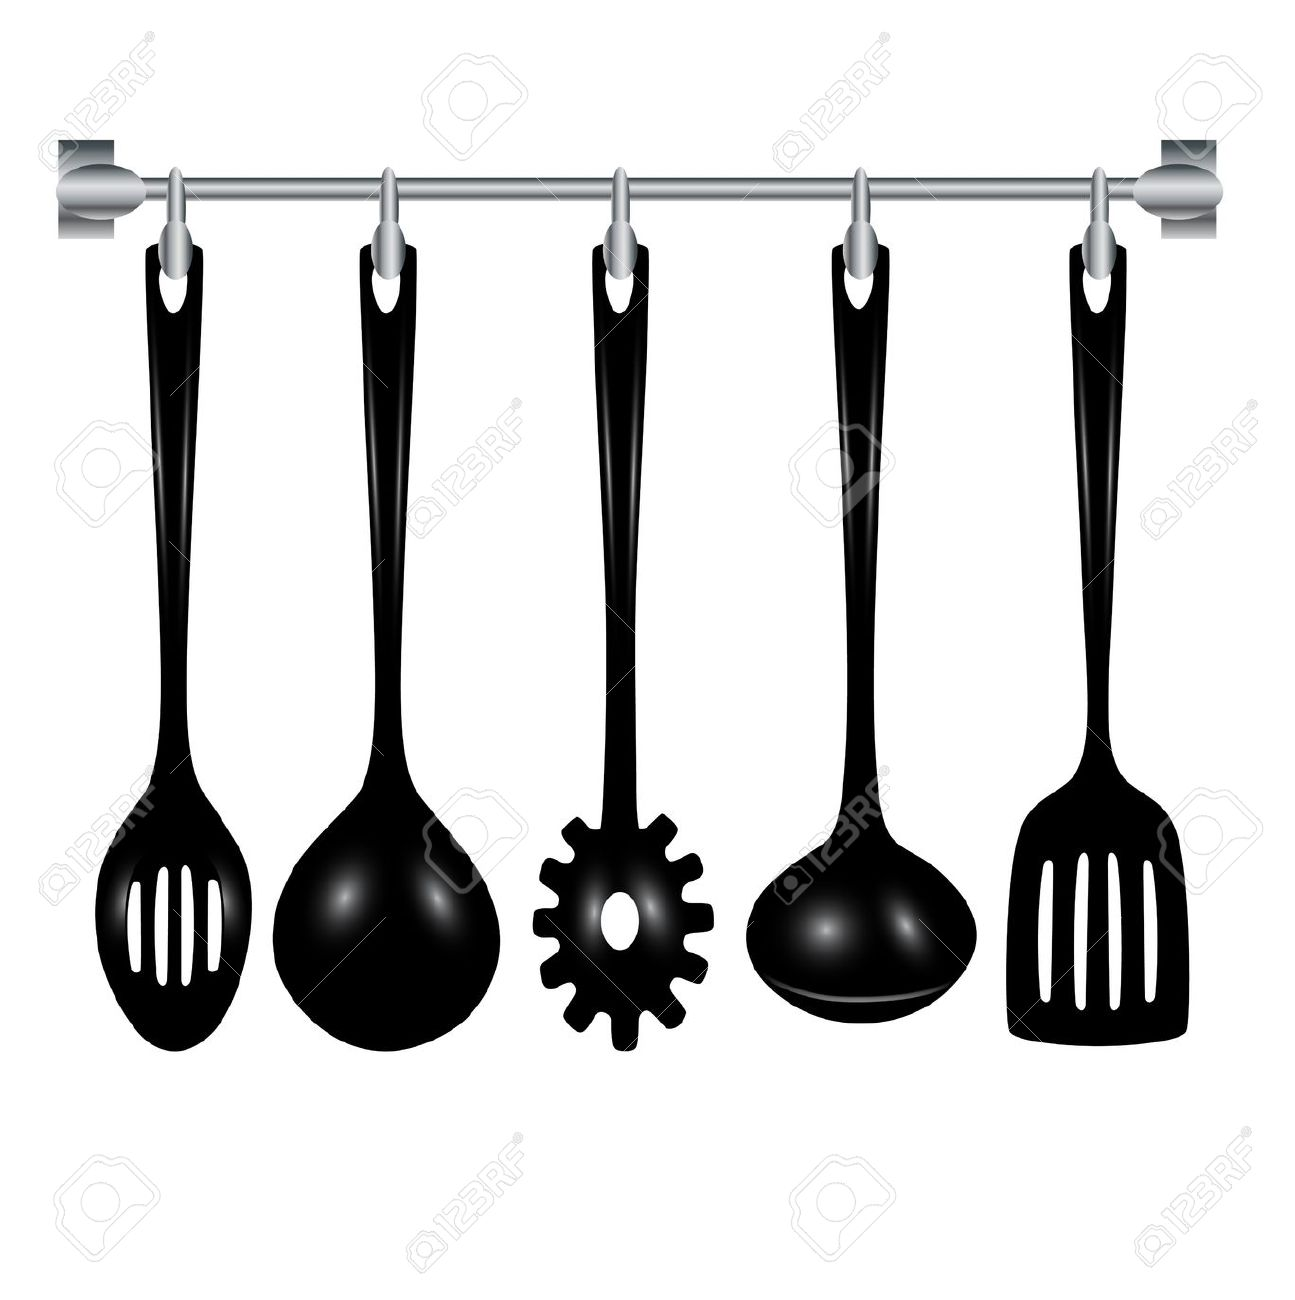 Free cooking utensils clipart free Cooking Utensils Clipart | Free download best Cooking Utensils ... free